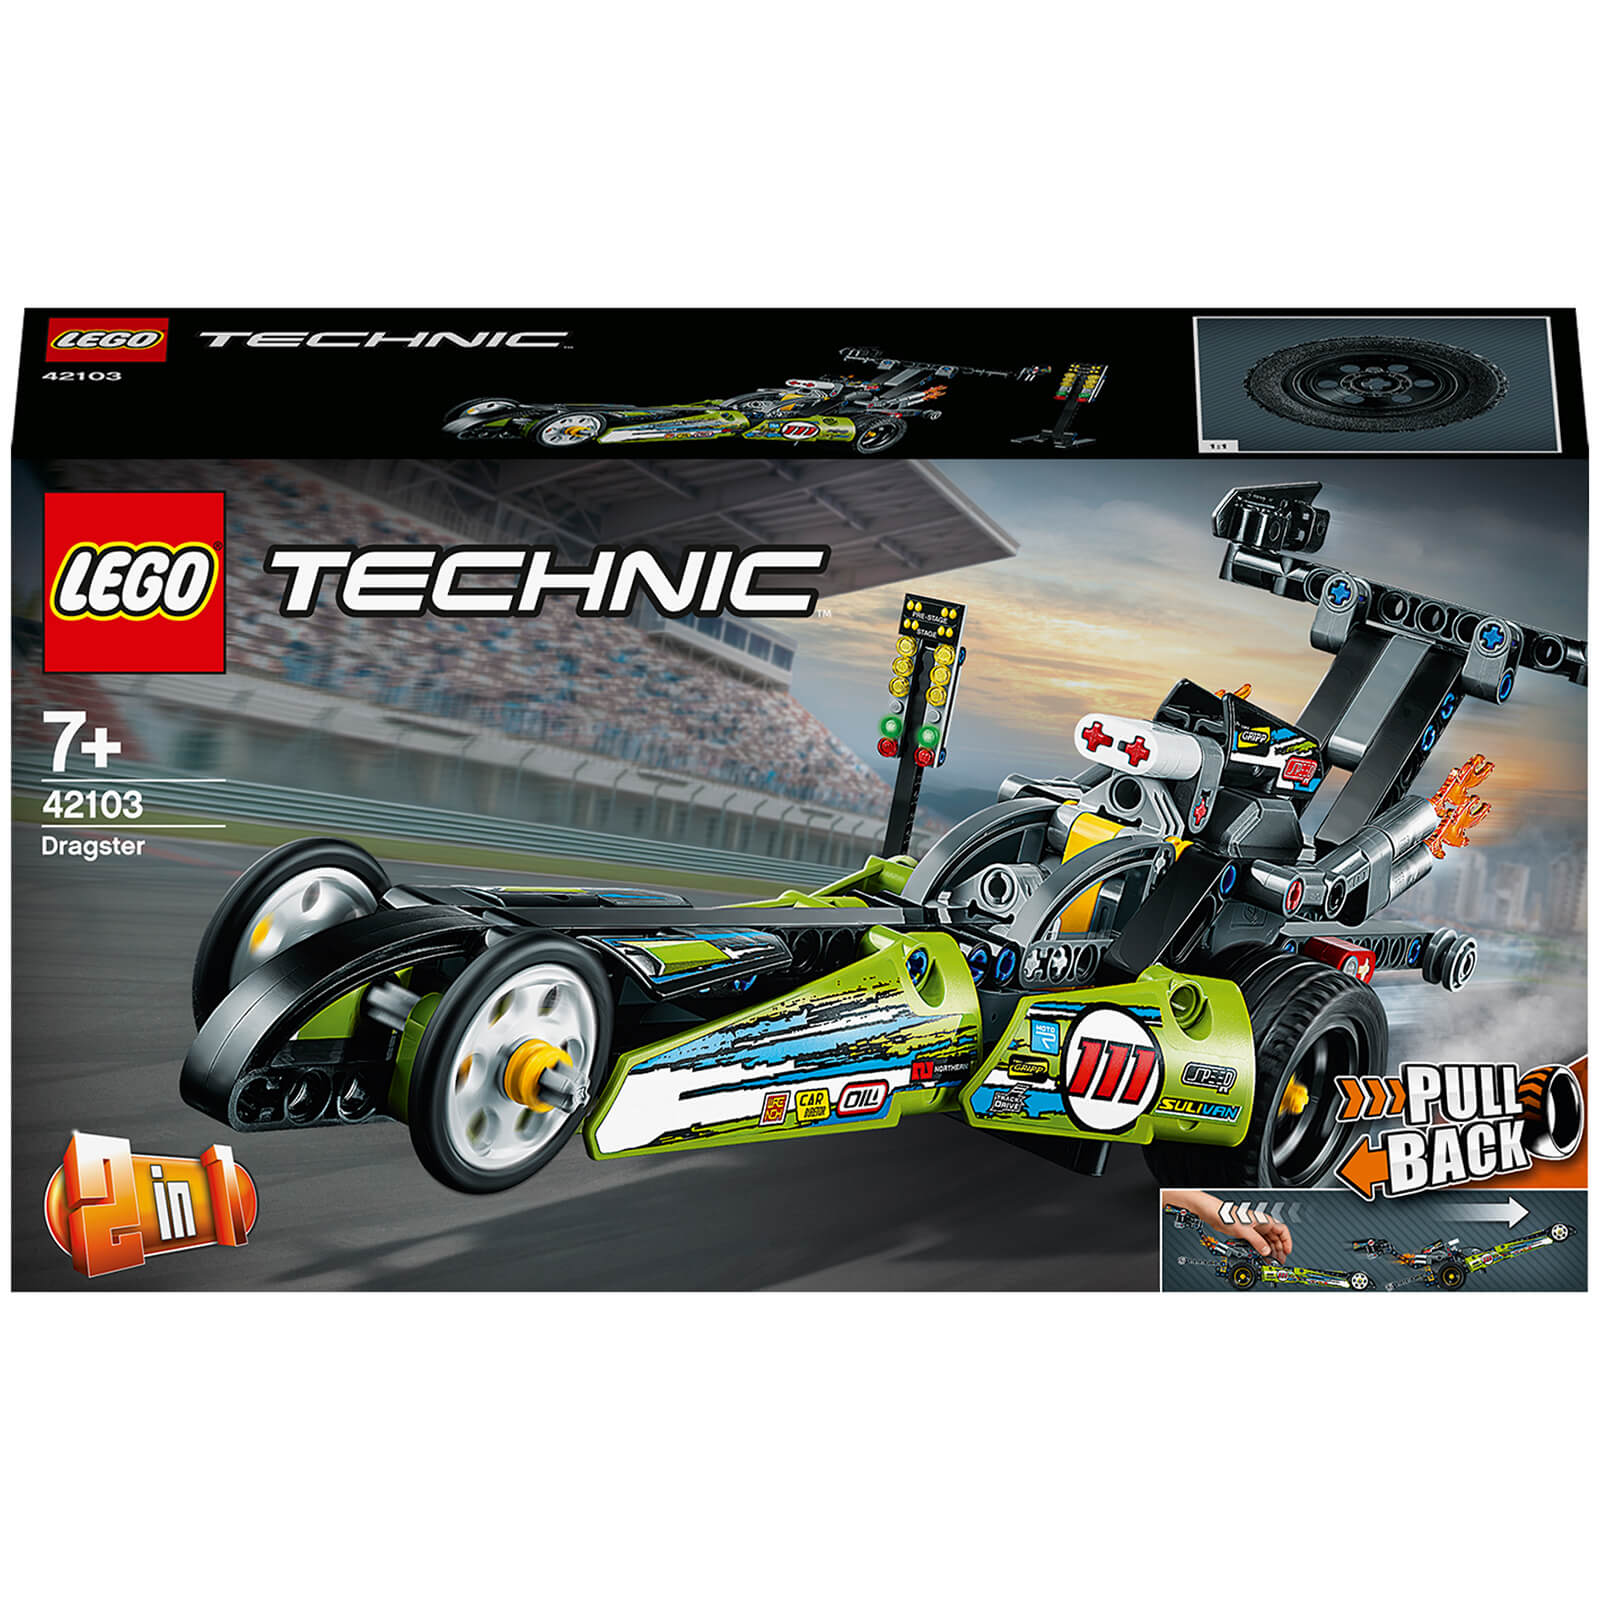 Image of 42103 LEGO® TECHNIC Dragster racing car